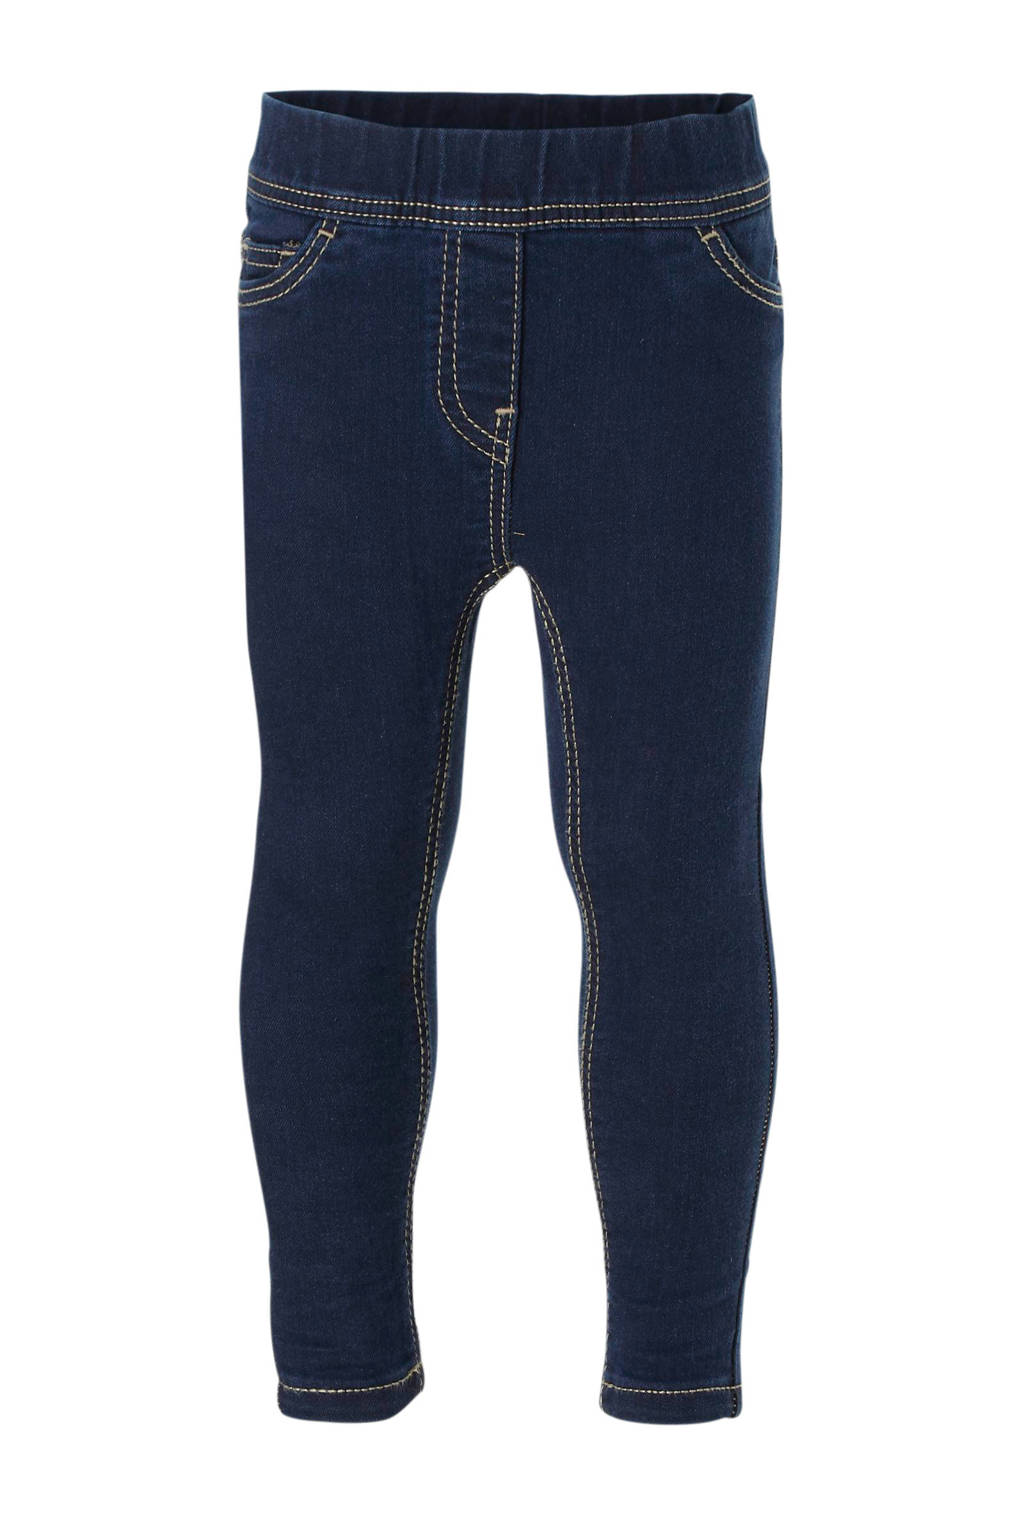 C&A Palomino skinny fit jegging, Donkerblauw